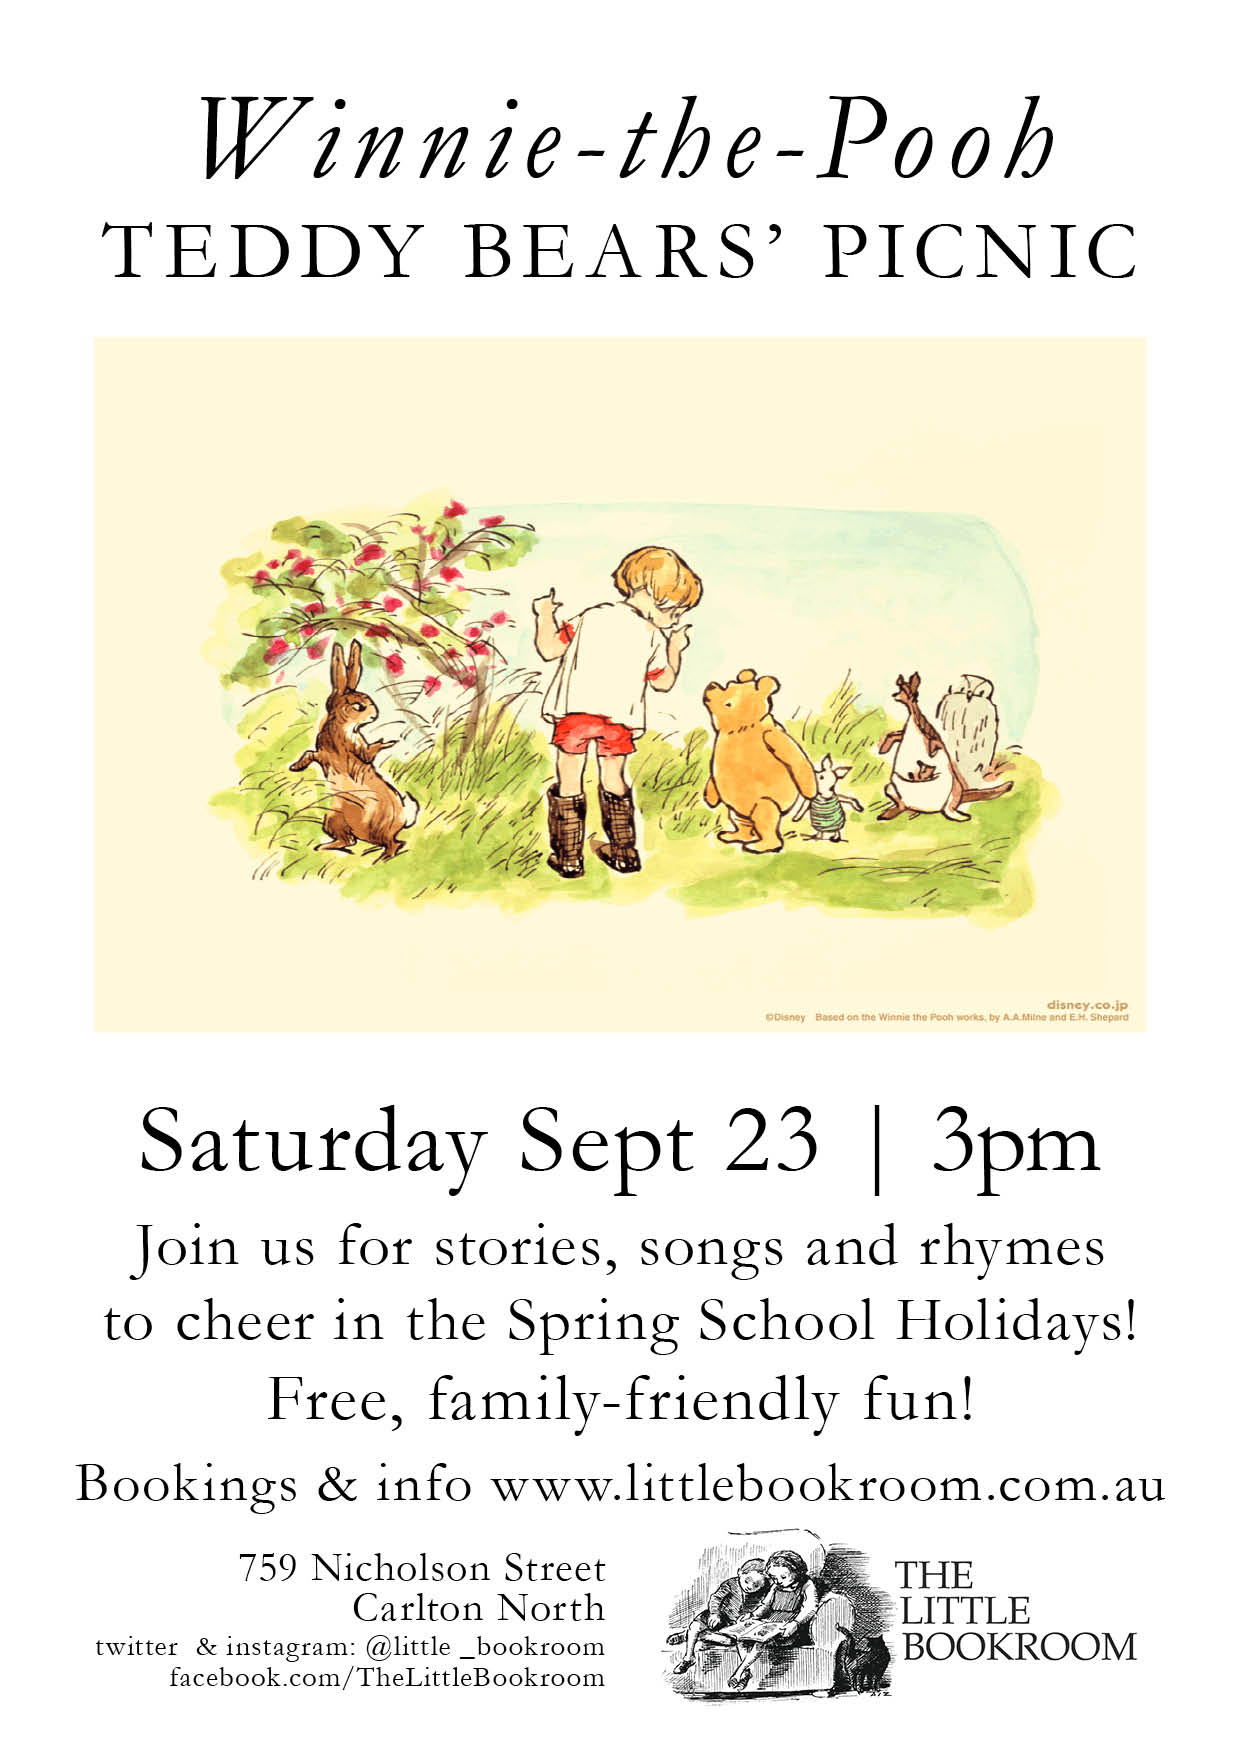 Winnie the Pooh Teddy Bears' Picnic Saturday 23 September 3pm